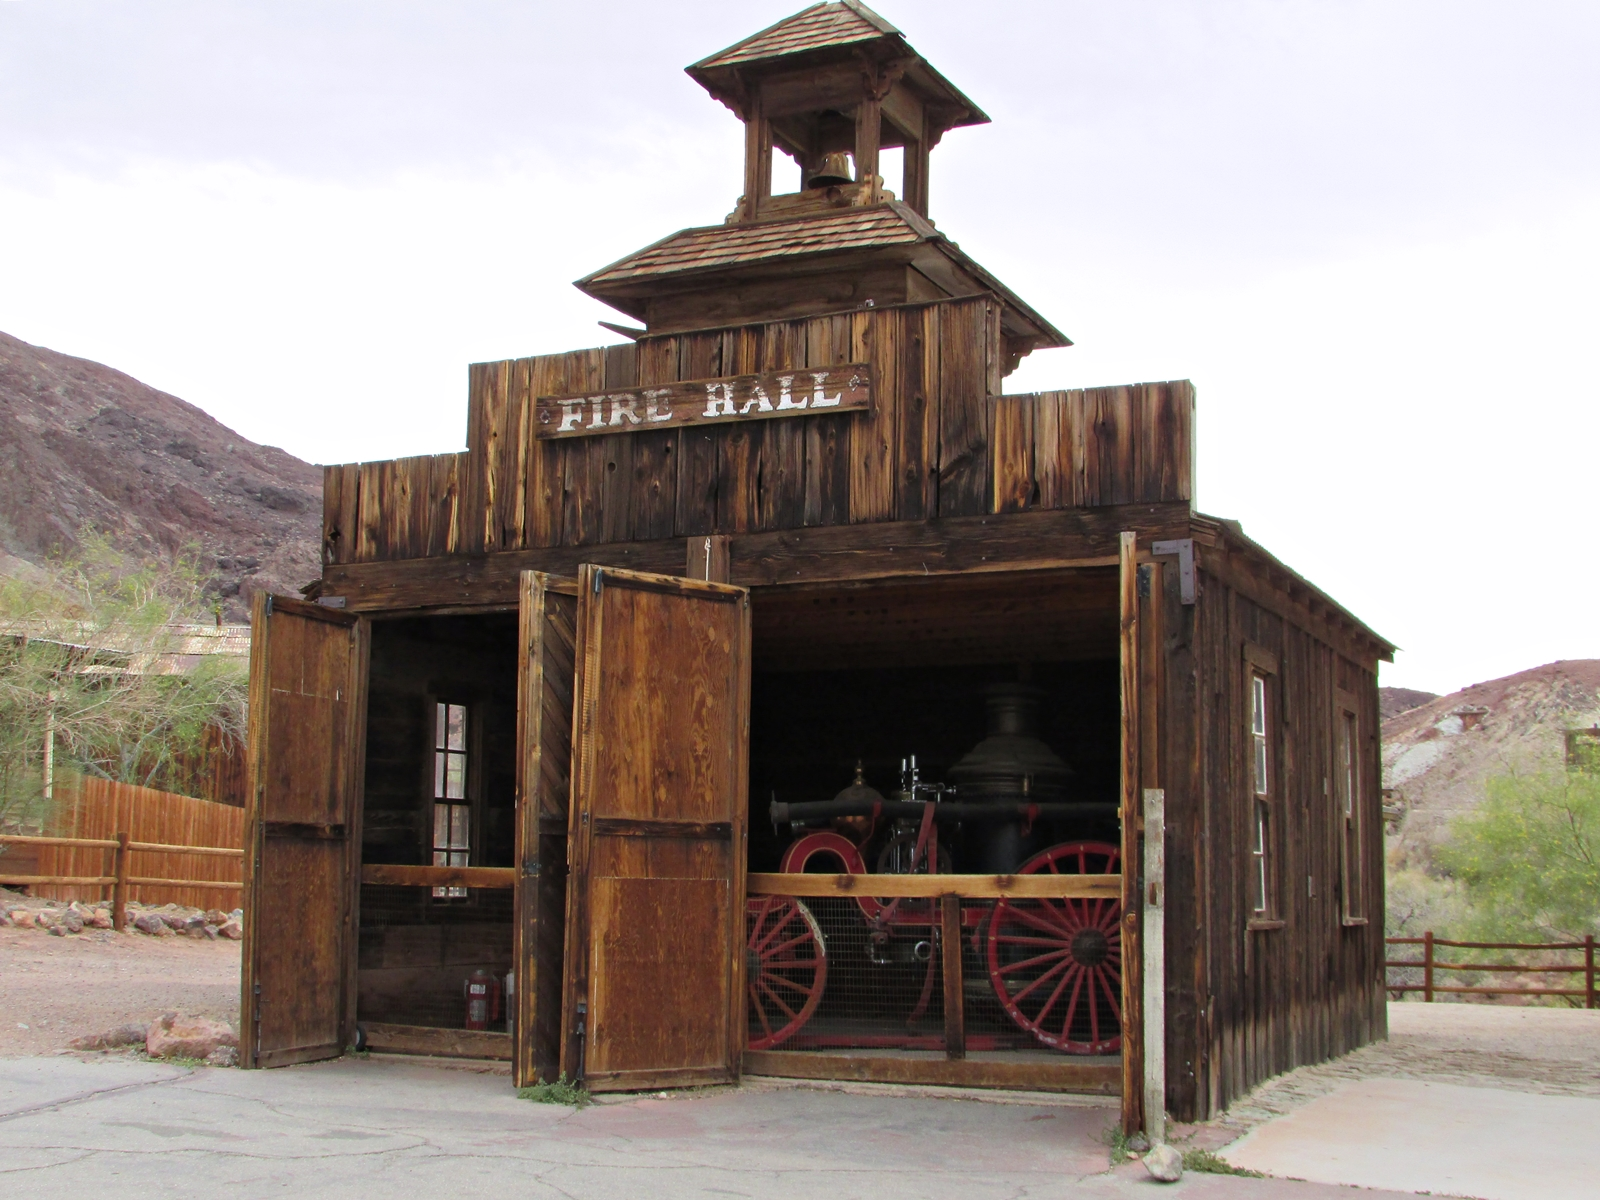 Calico Ghost town - usa rundreise - geisterstadt in der Mojave Wüste - Fire Hall - Roadtrip - Fashionladyloves by Tamara Wagner Travelblog